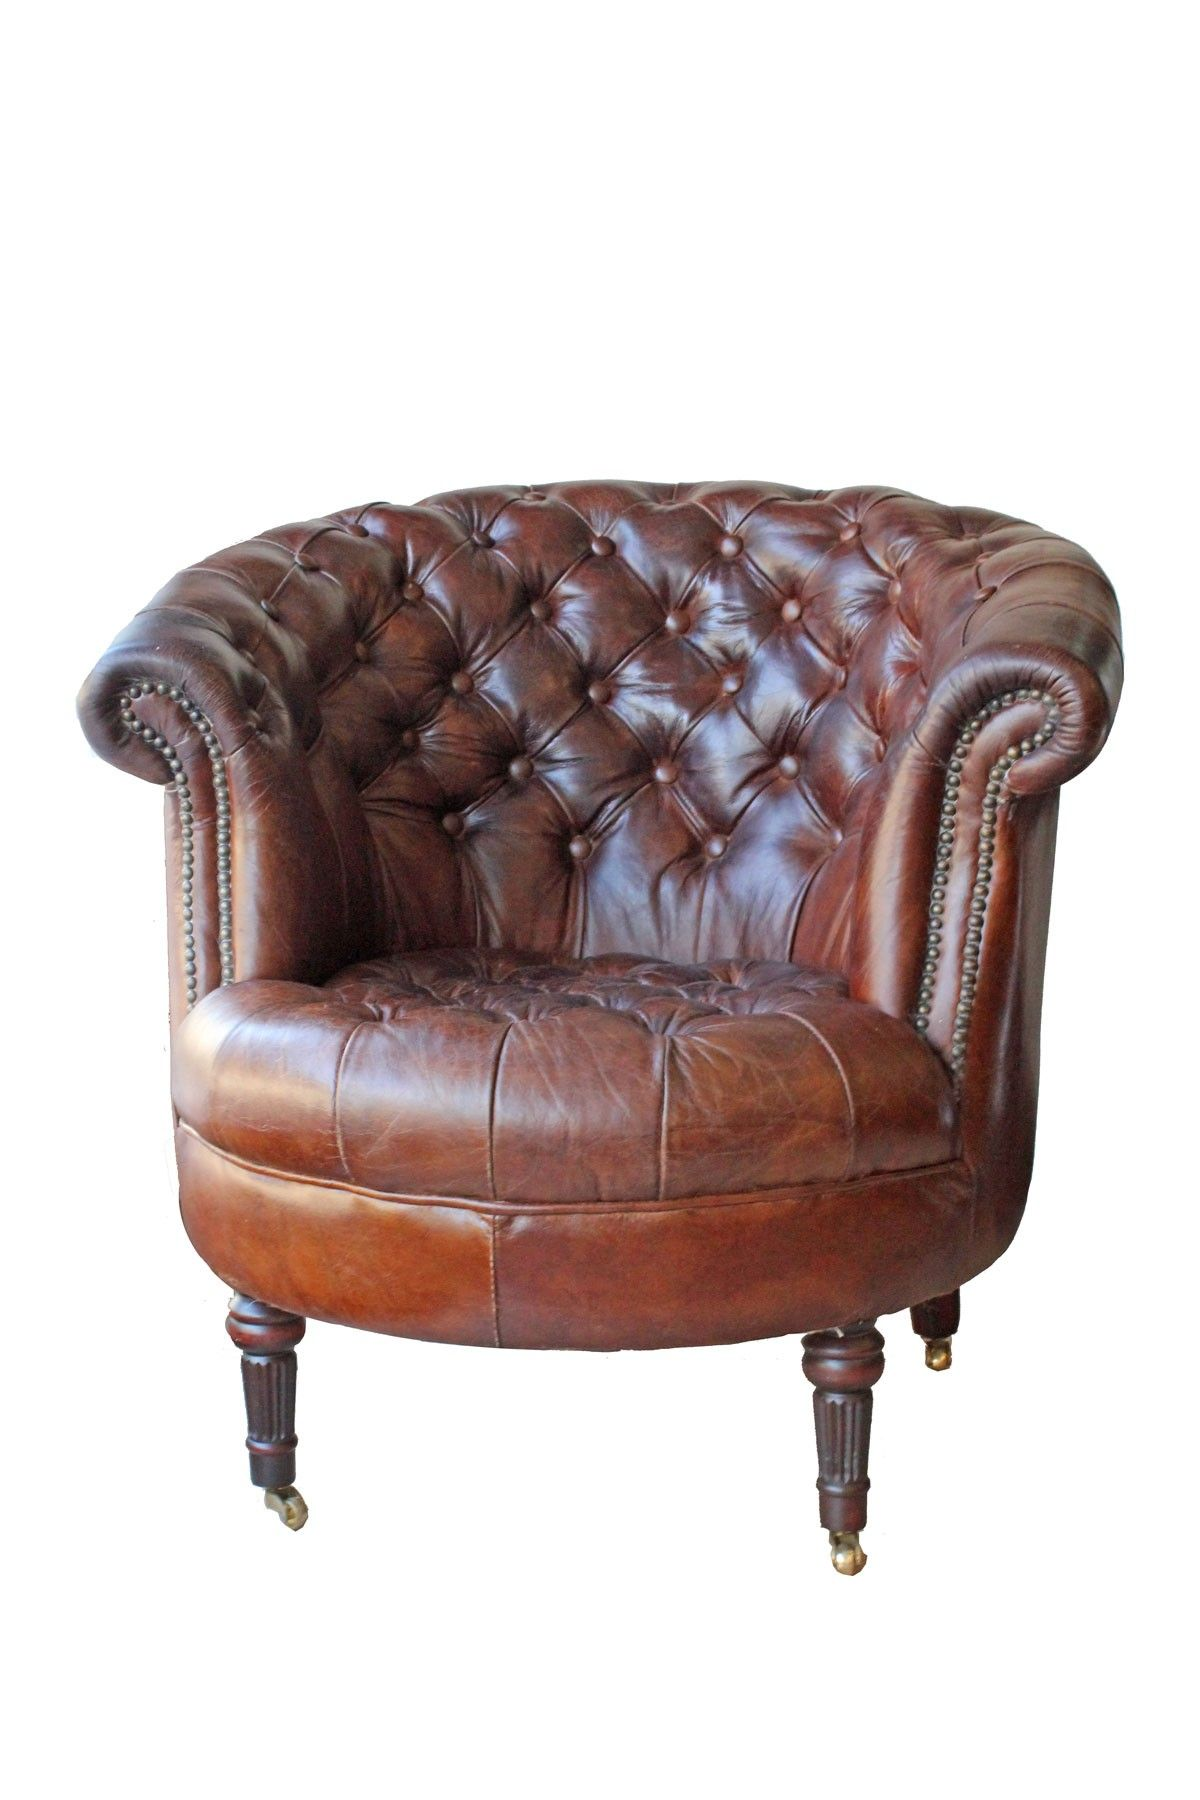 leather barrel tufted chesterield brown leather chair on caster